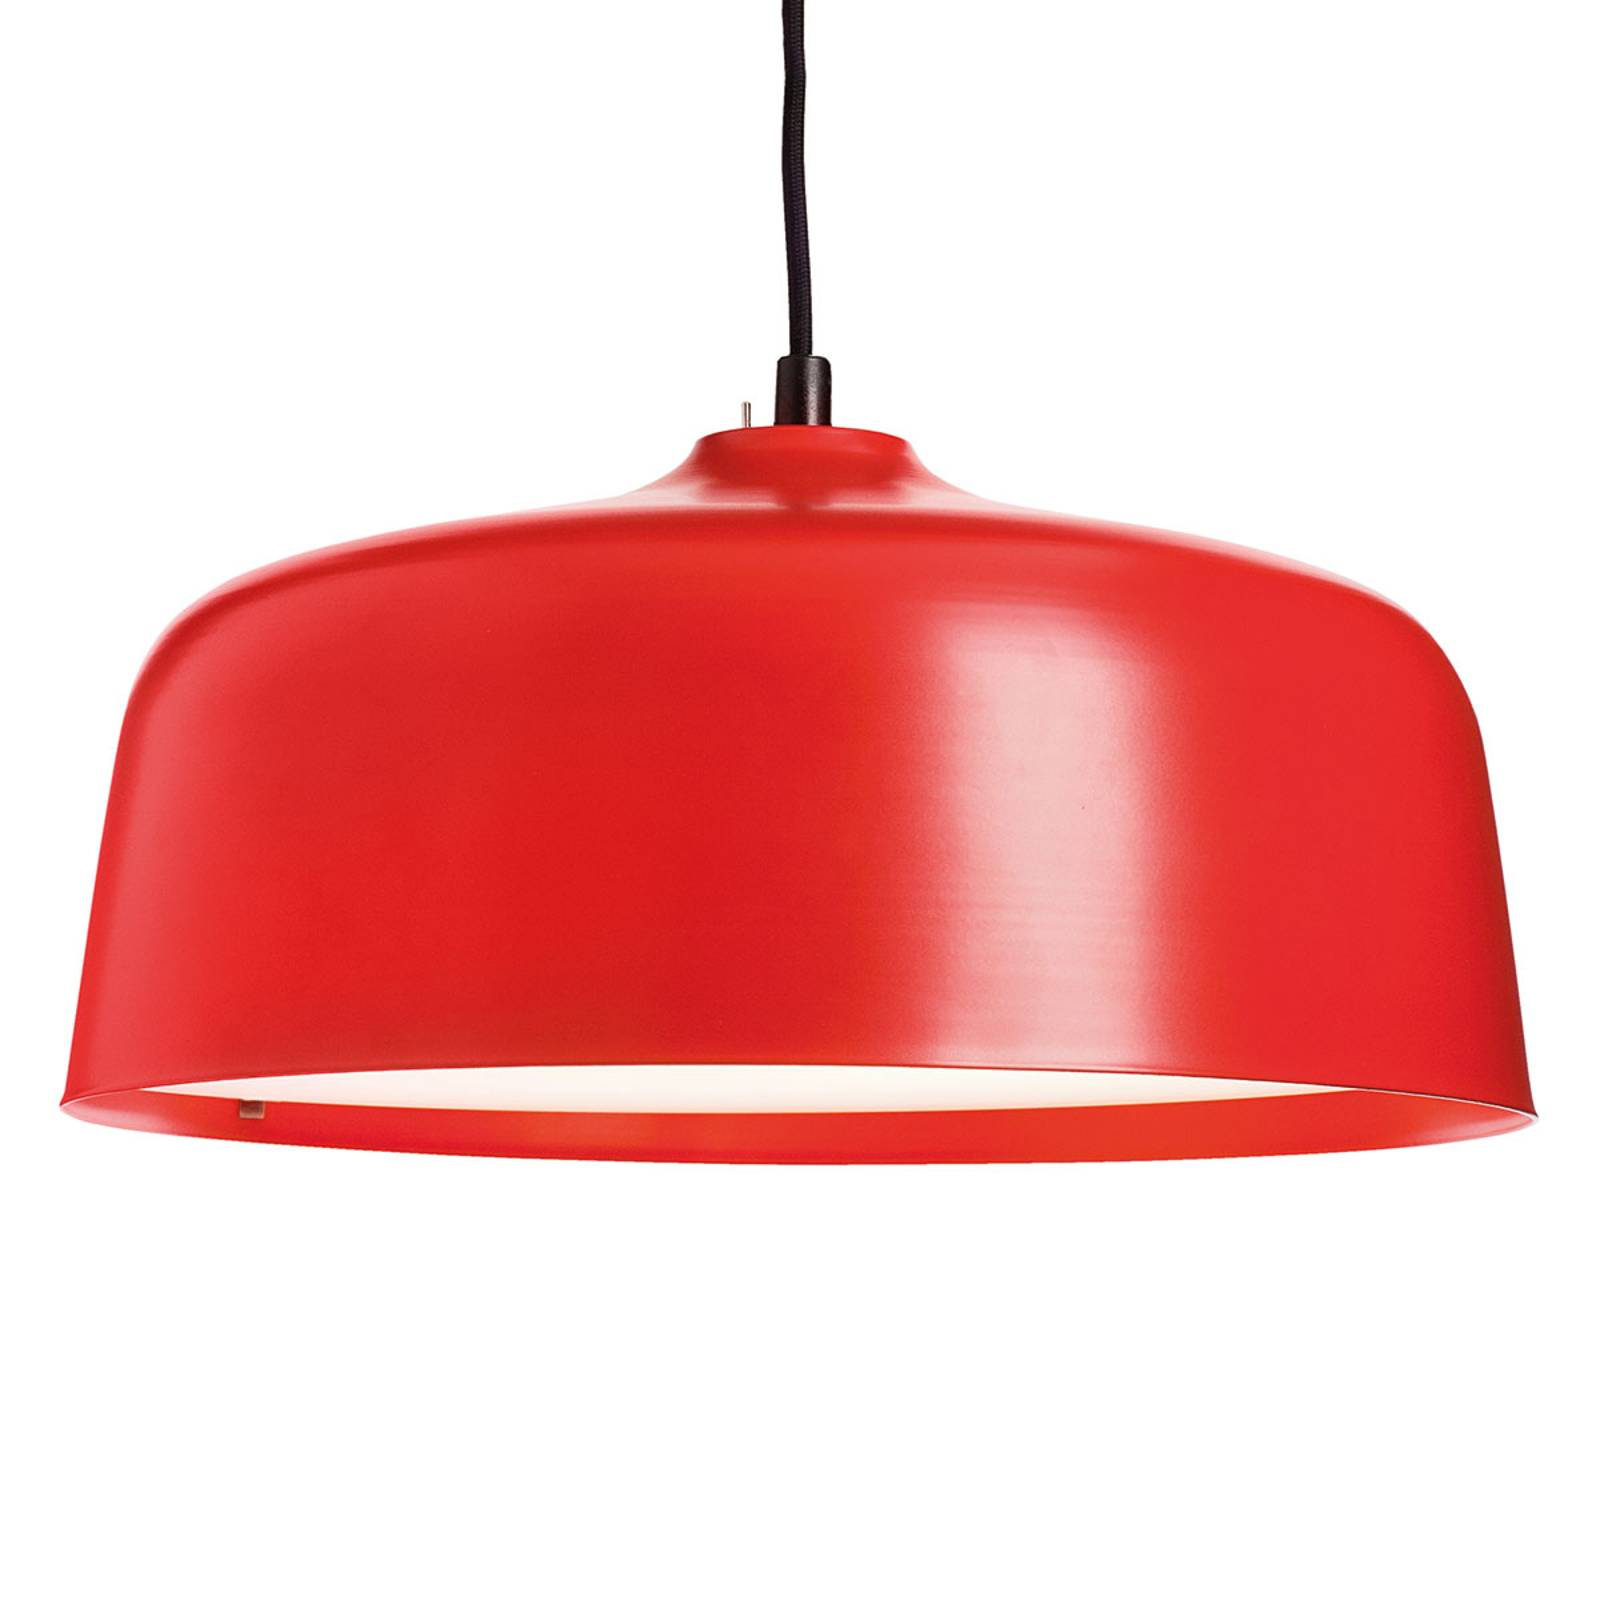 Innolux Candeo therapielicht-hanglamp rood